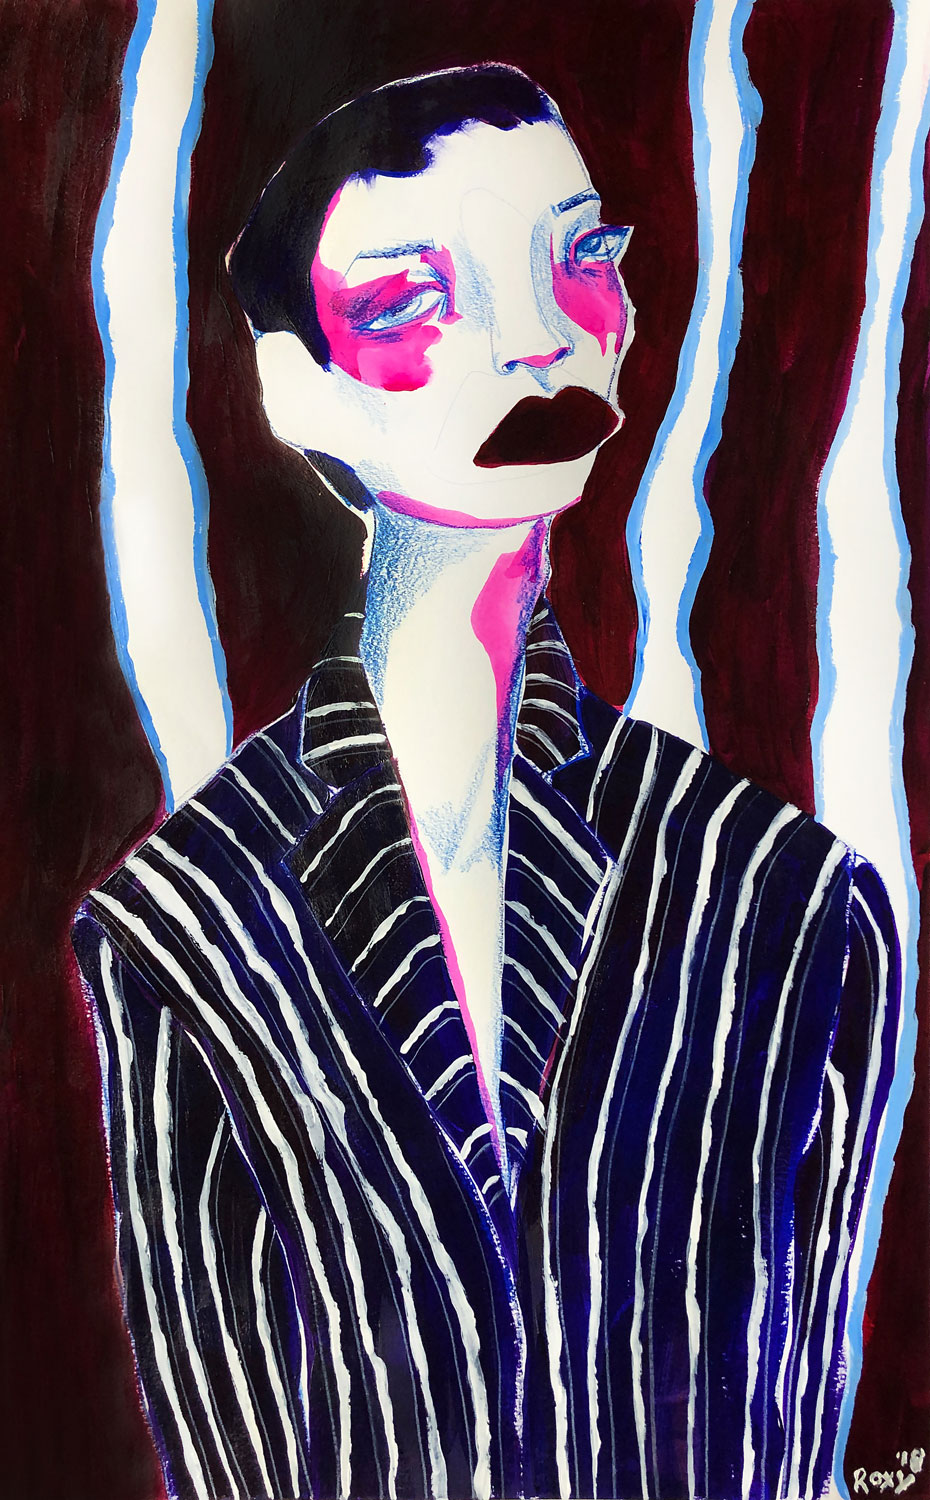 fashion_illustration_roxyvanbemmel_painting_utrecht.jpg